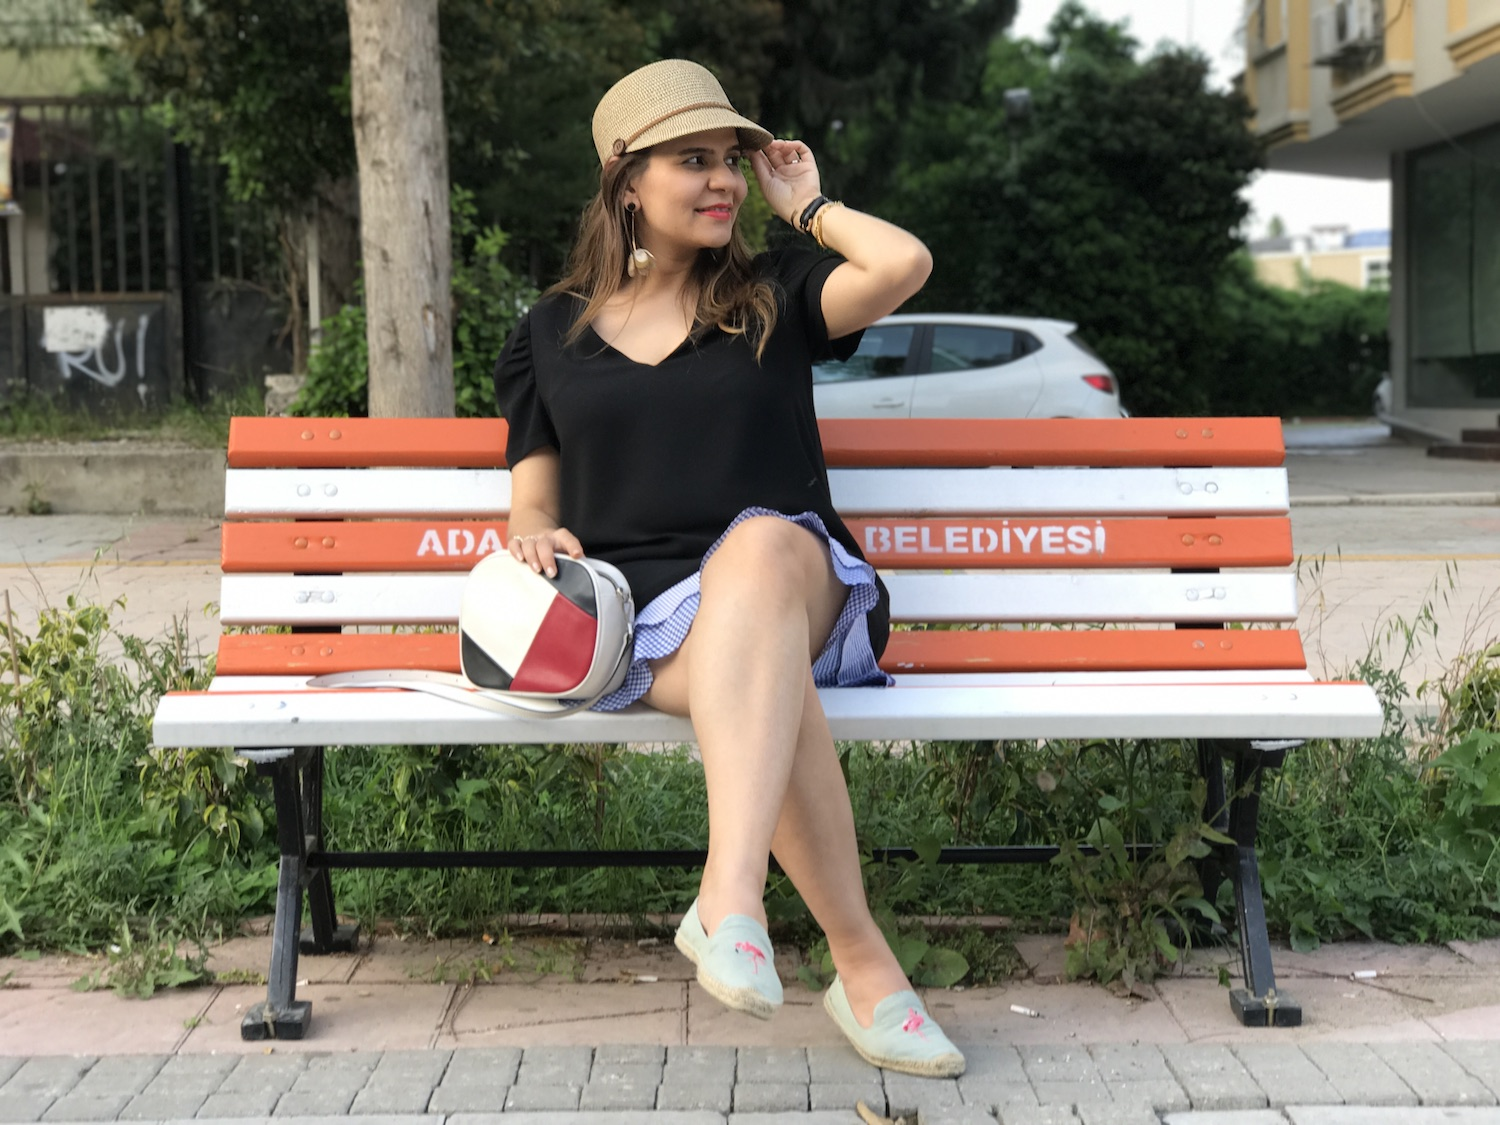 adana-turkey-what-to-do-in-adana-2